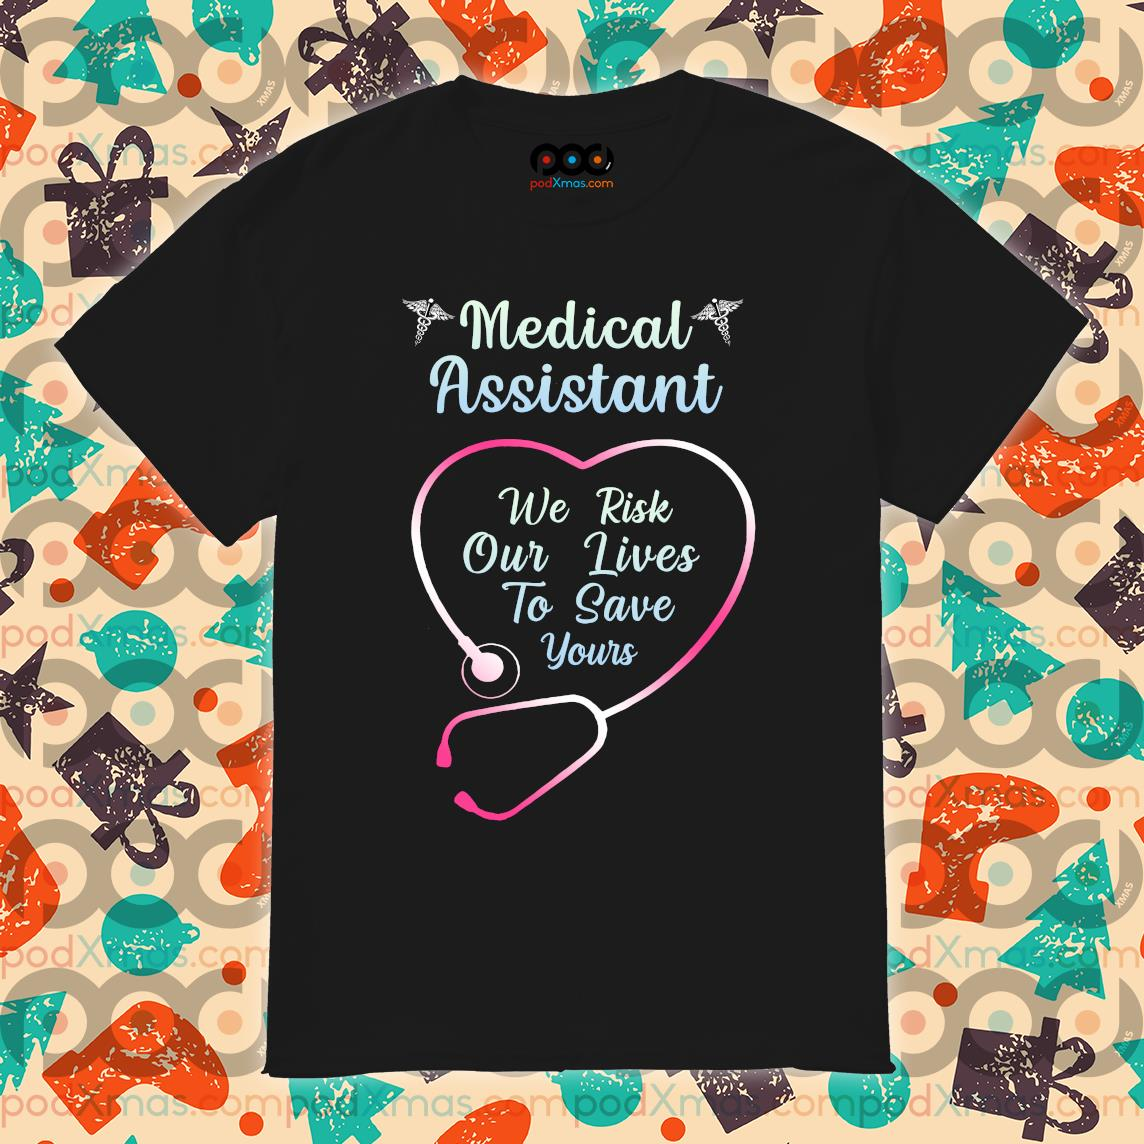 Medical Assistant we risk our lives to save yours shirt